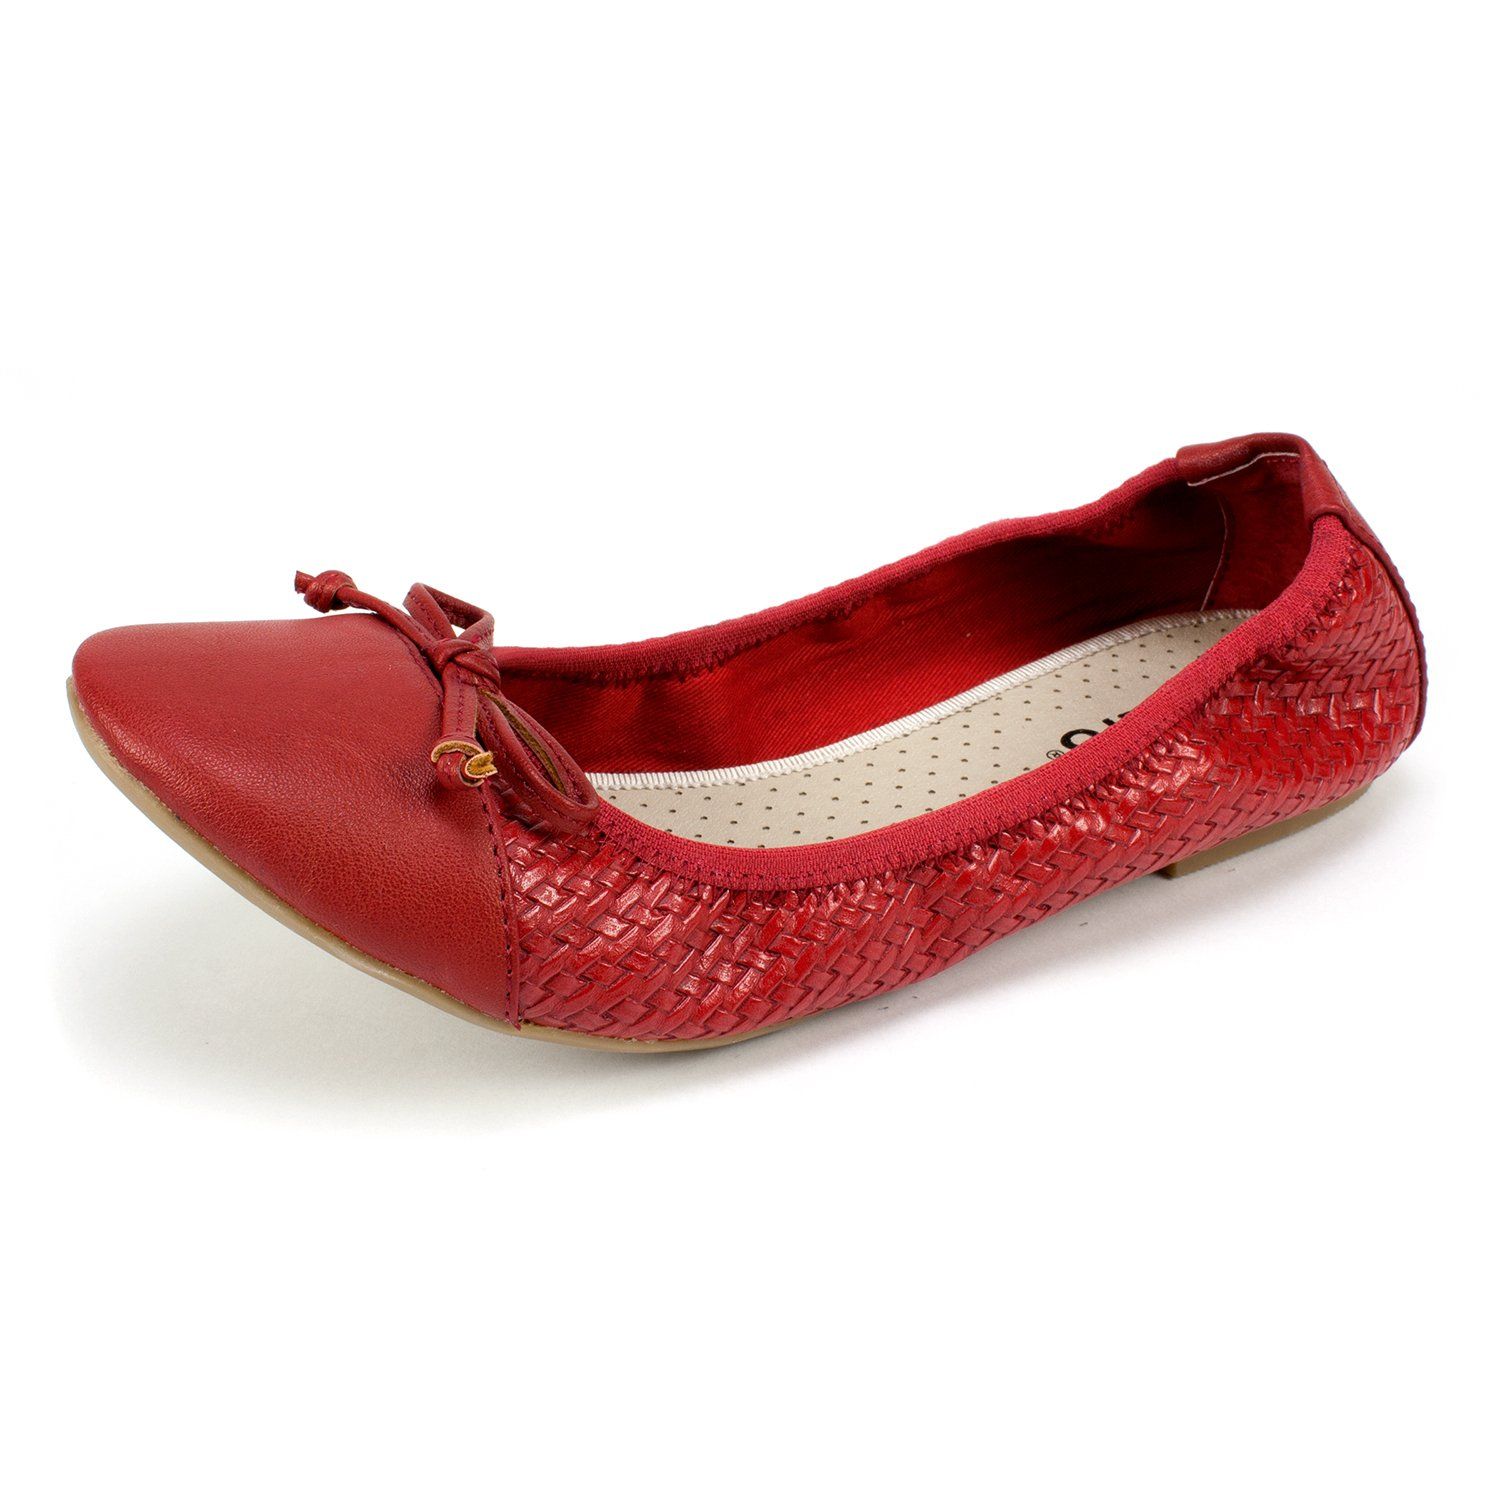 RIALTO Shoes Sunnyside II Women's Flat, RED/Woven, 7 M